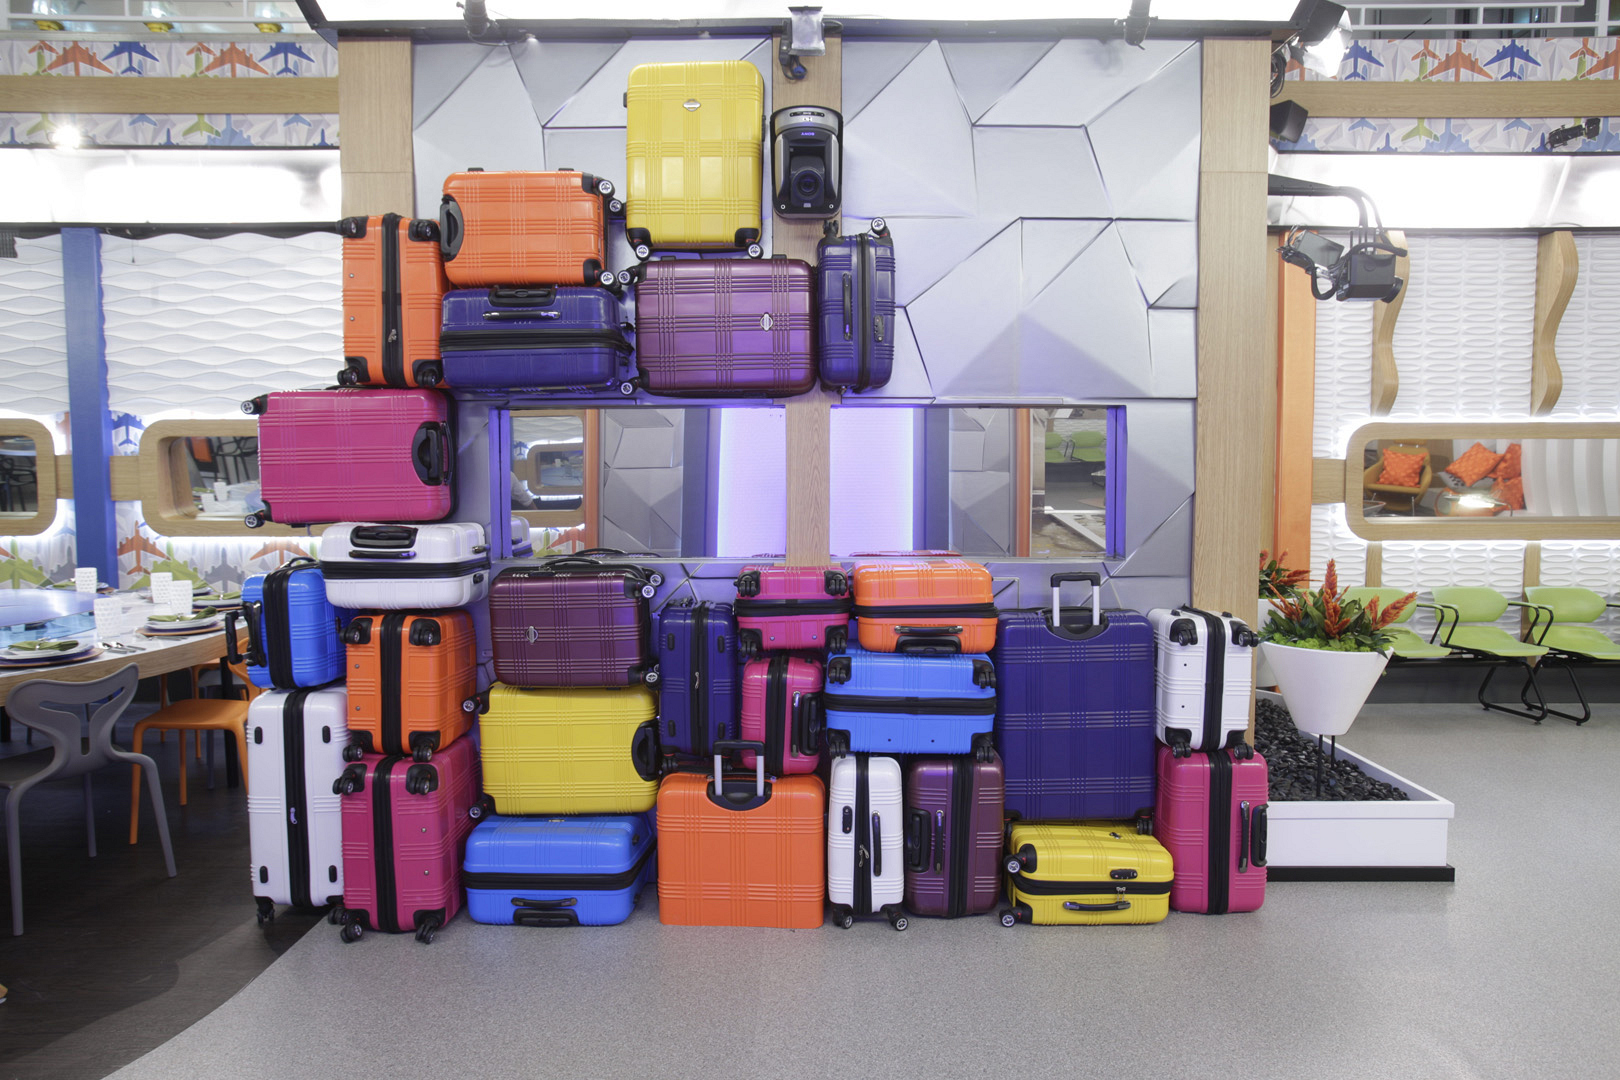 This fun luggage display is a playful nod to all the adventures in store this summer.